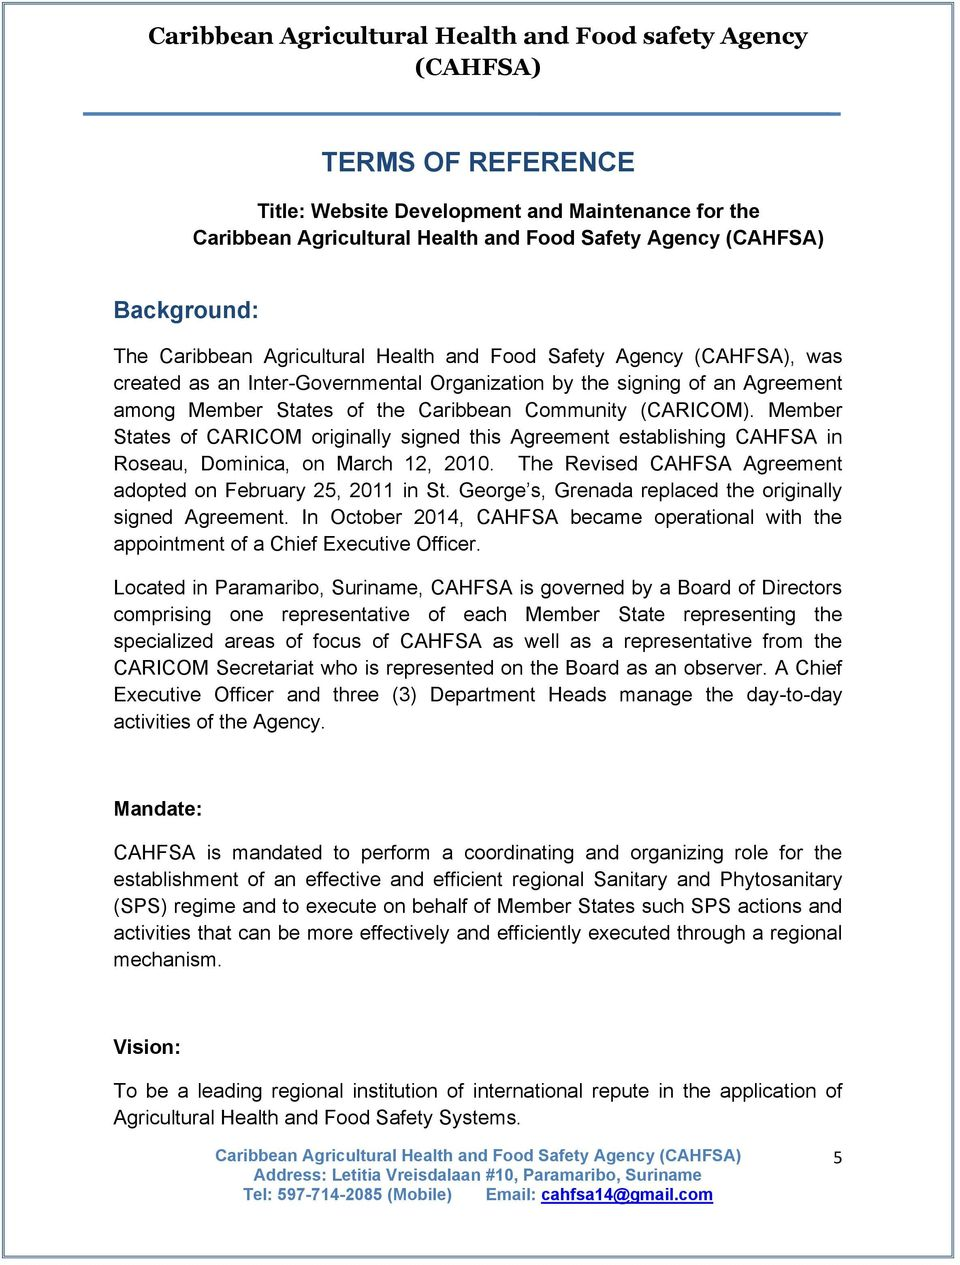 The Revised CAHFSA Agreement adopted on February 25, 2011 in St. George s, Grenada replaced the originally signed Agreement.